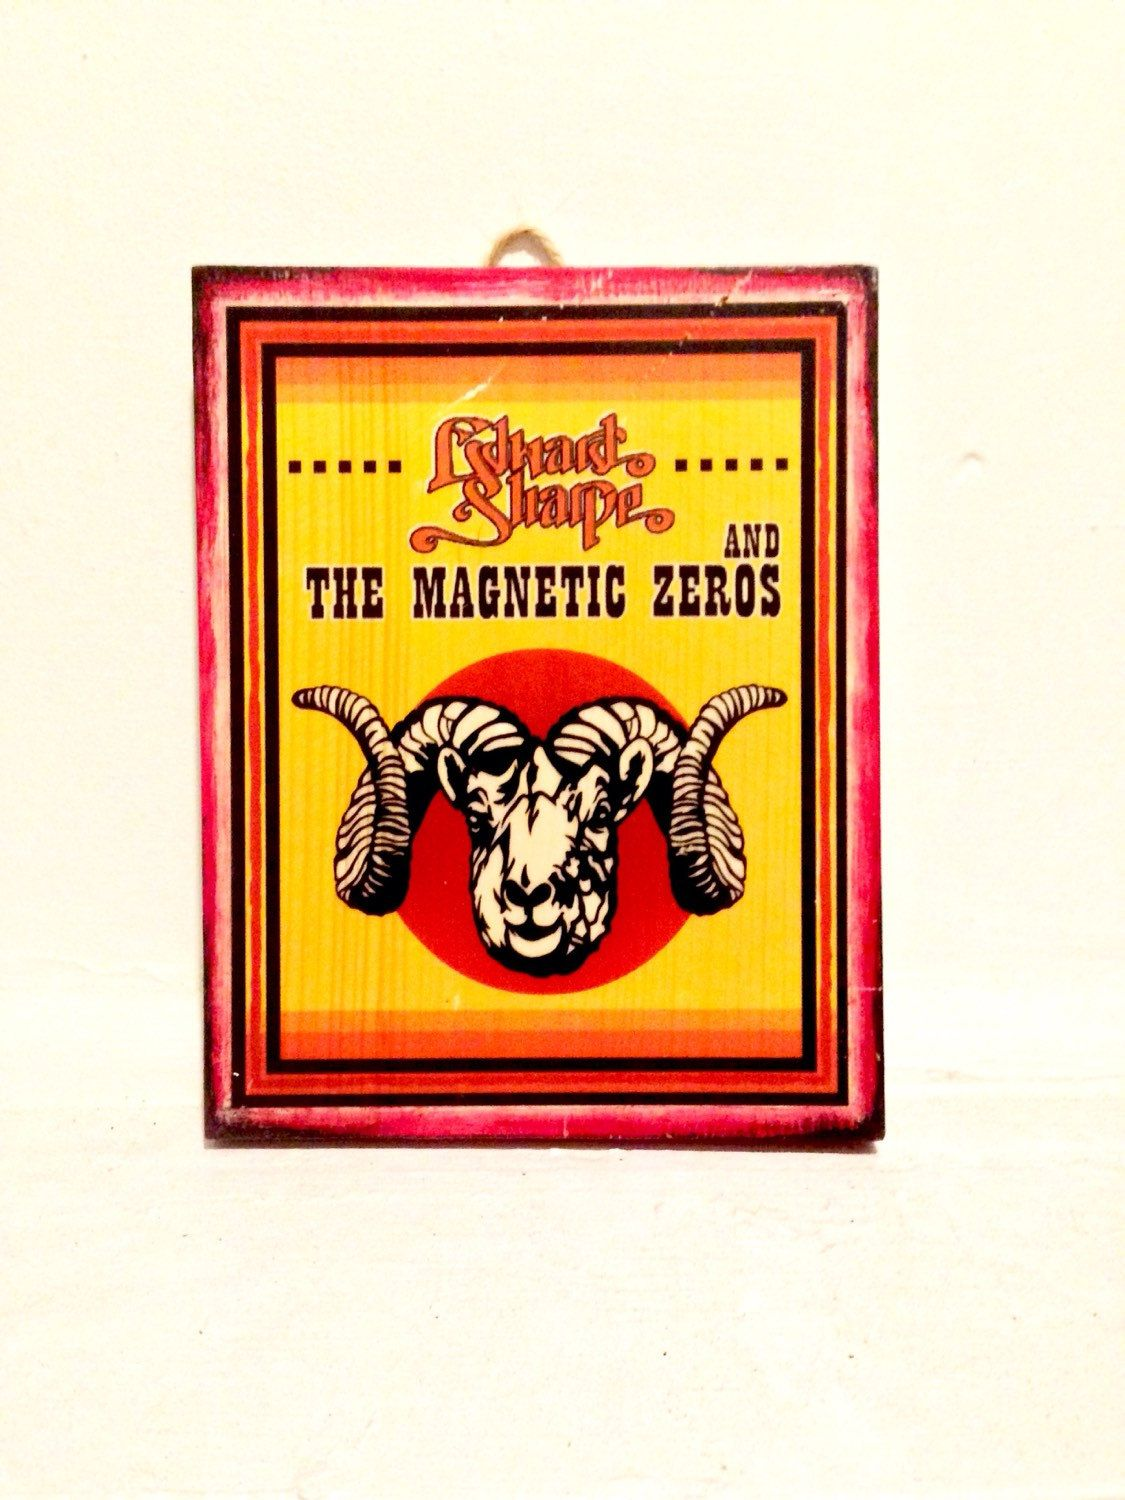 Edward sharpe and the magnetic zeros wood wall hanging handmade ...